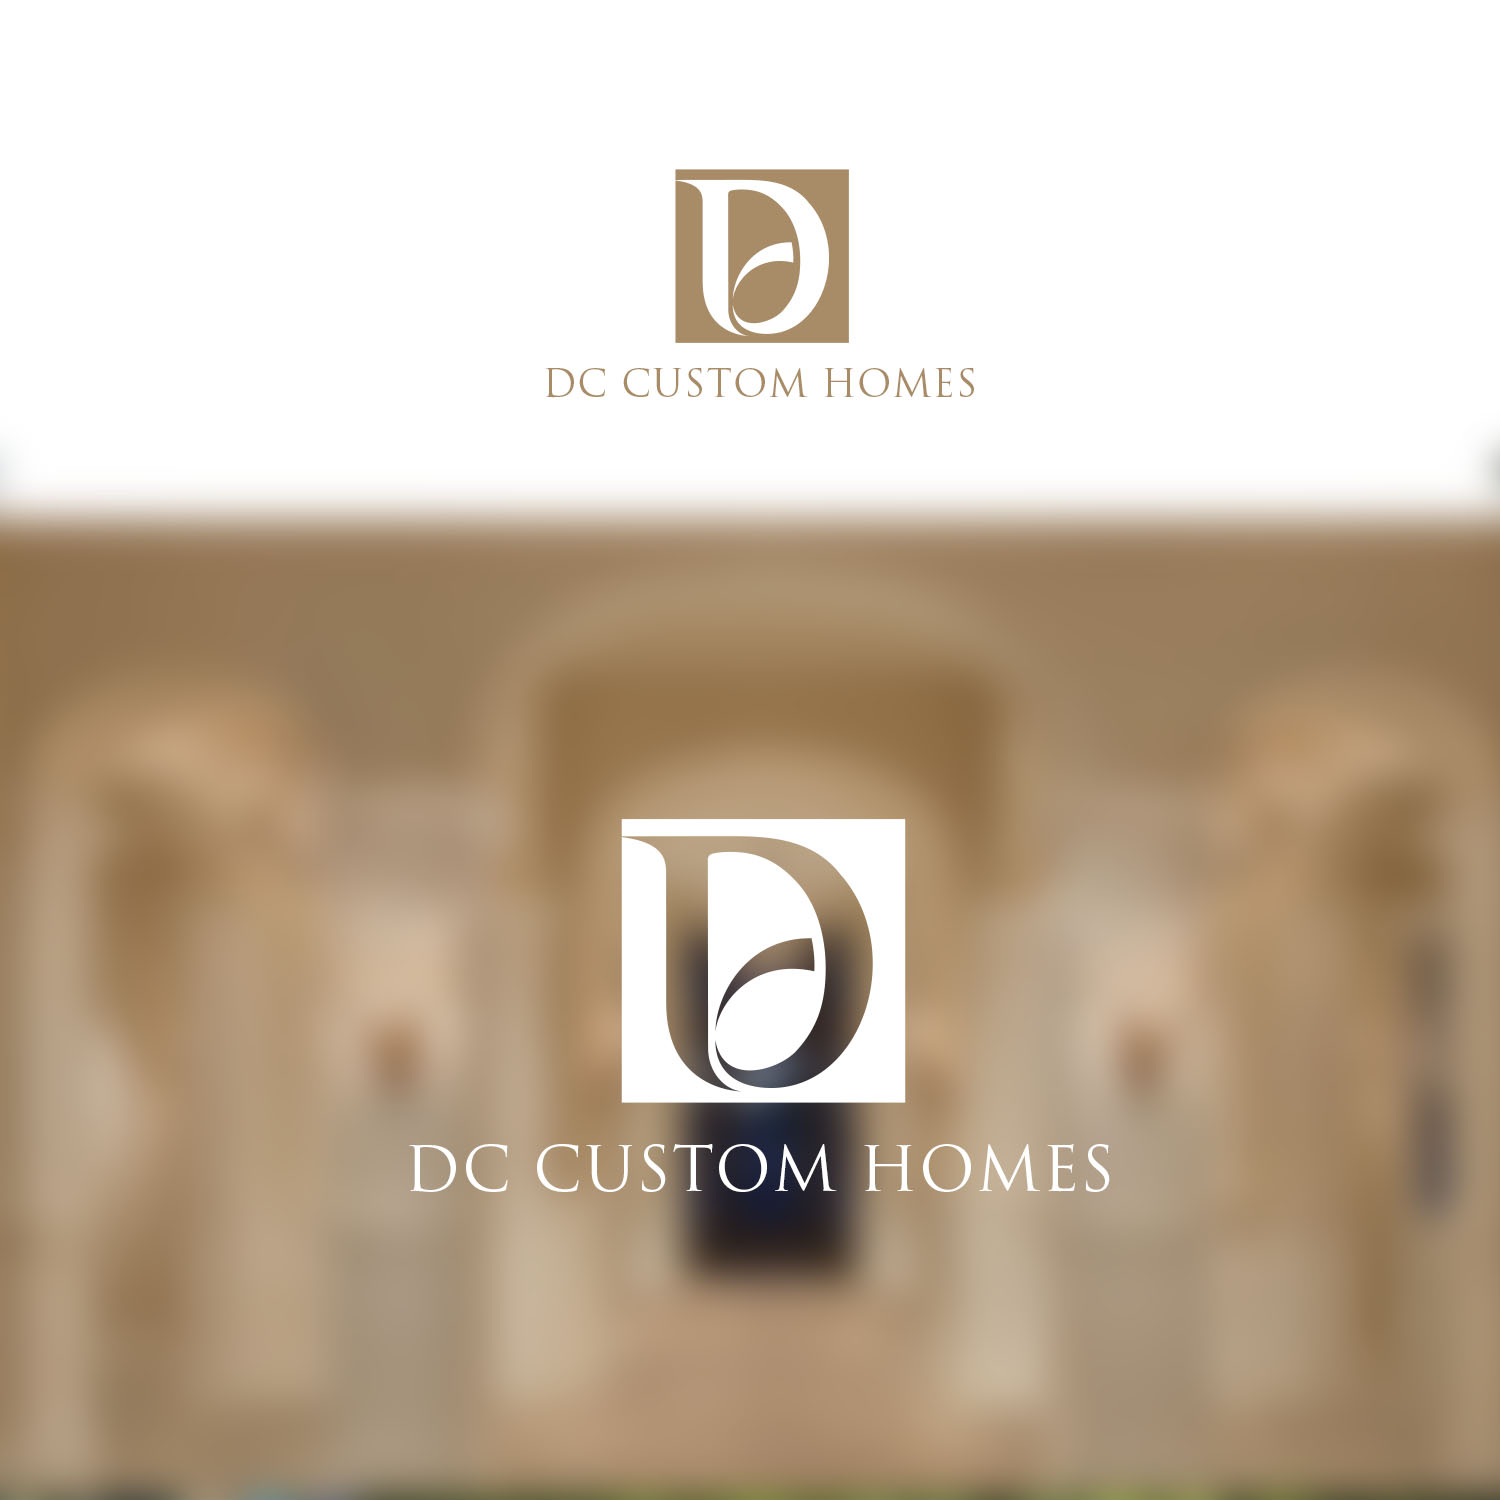 Logo Design by Private User - Entry No. 159 in the Logo Design Contest Creative Logo Design for DC Custom Homes.